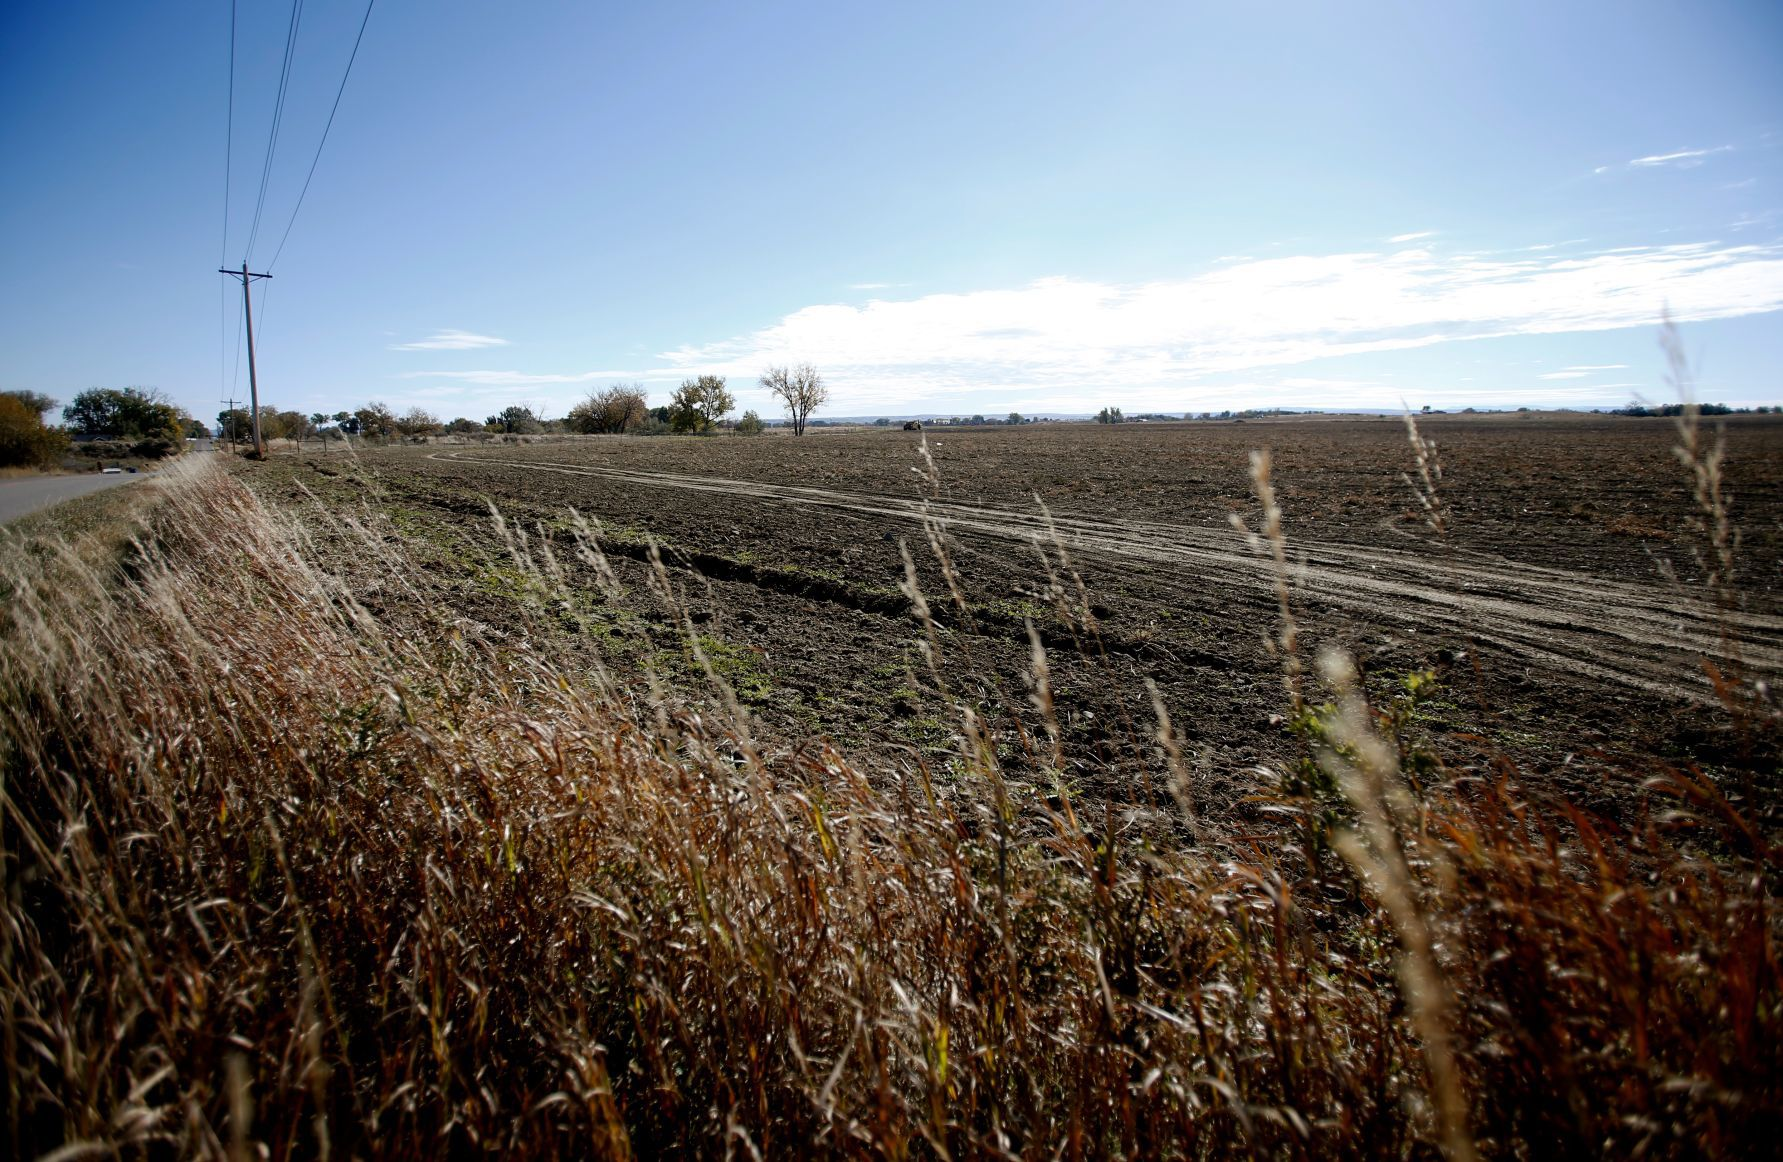 Subdivision for big toys — not people — planned for Billings' West End | Billings Gazette